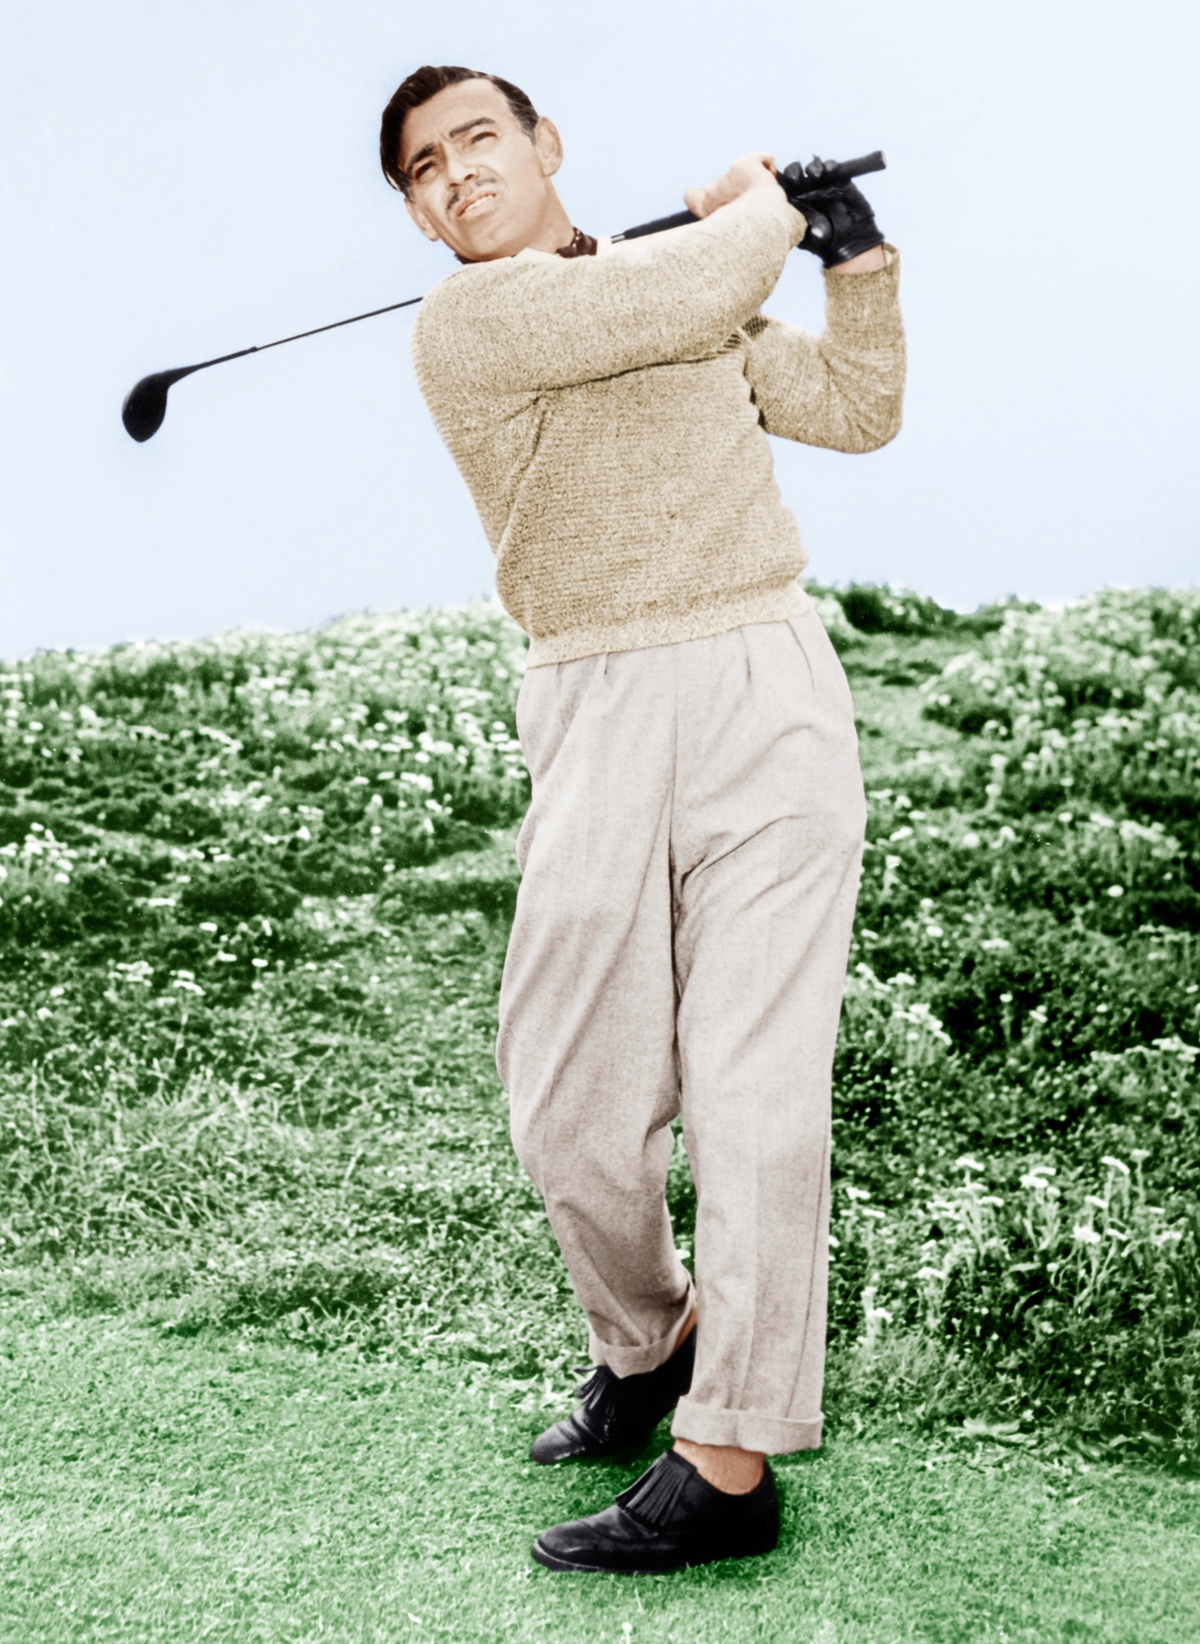 Clark Gable Enjoys A Game Of Golf, Ca. 1946